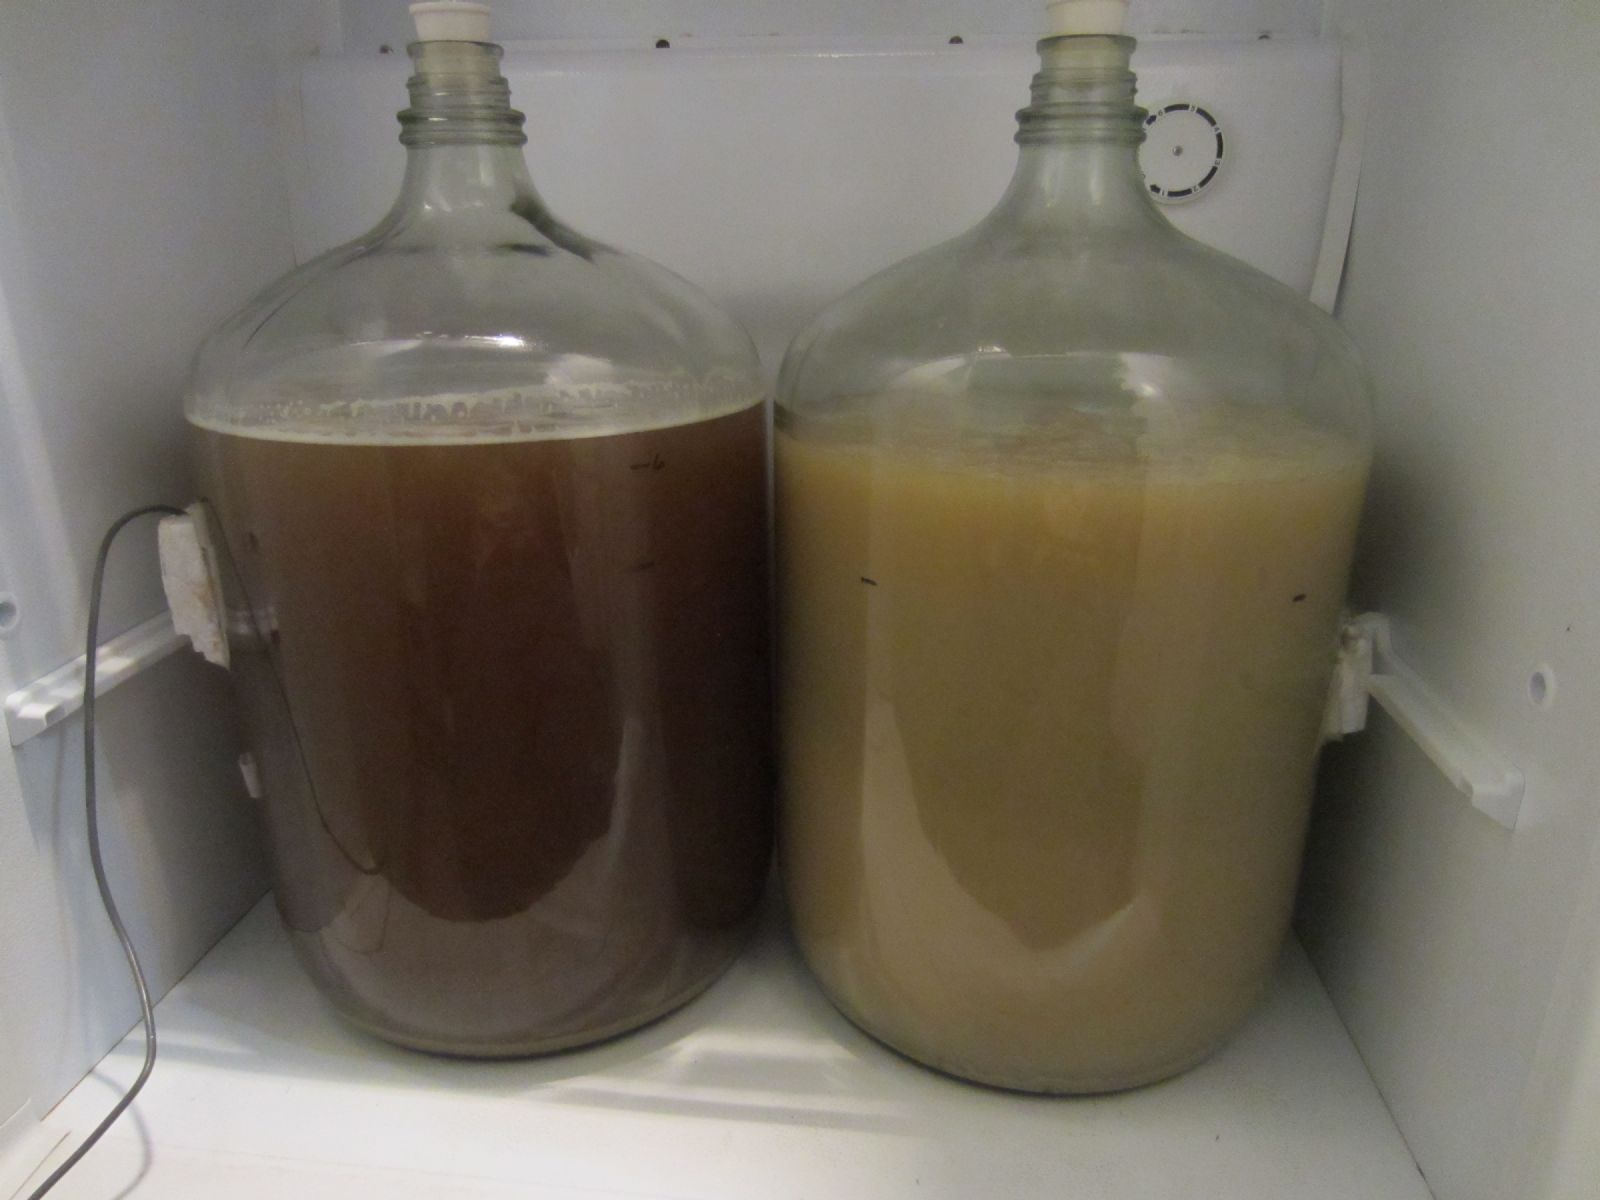 Clarified Wort Before and After